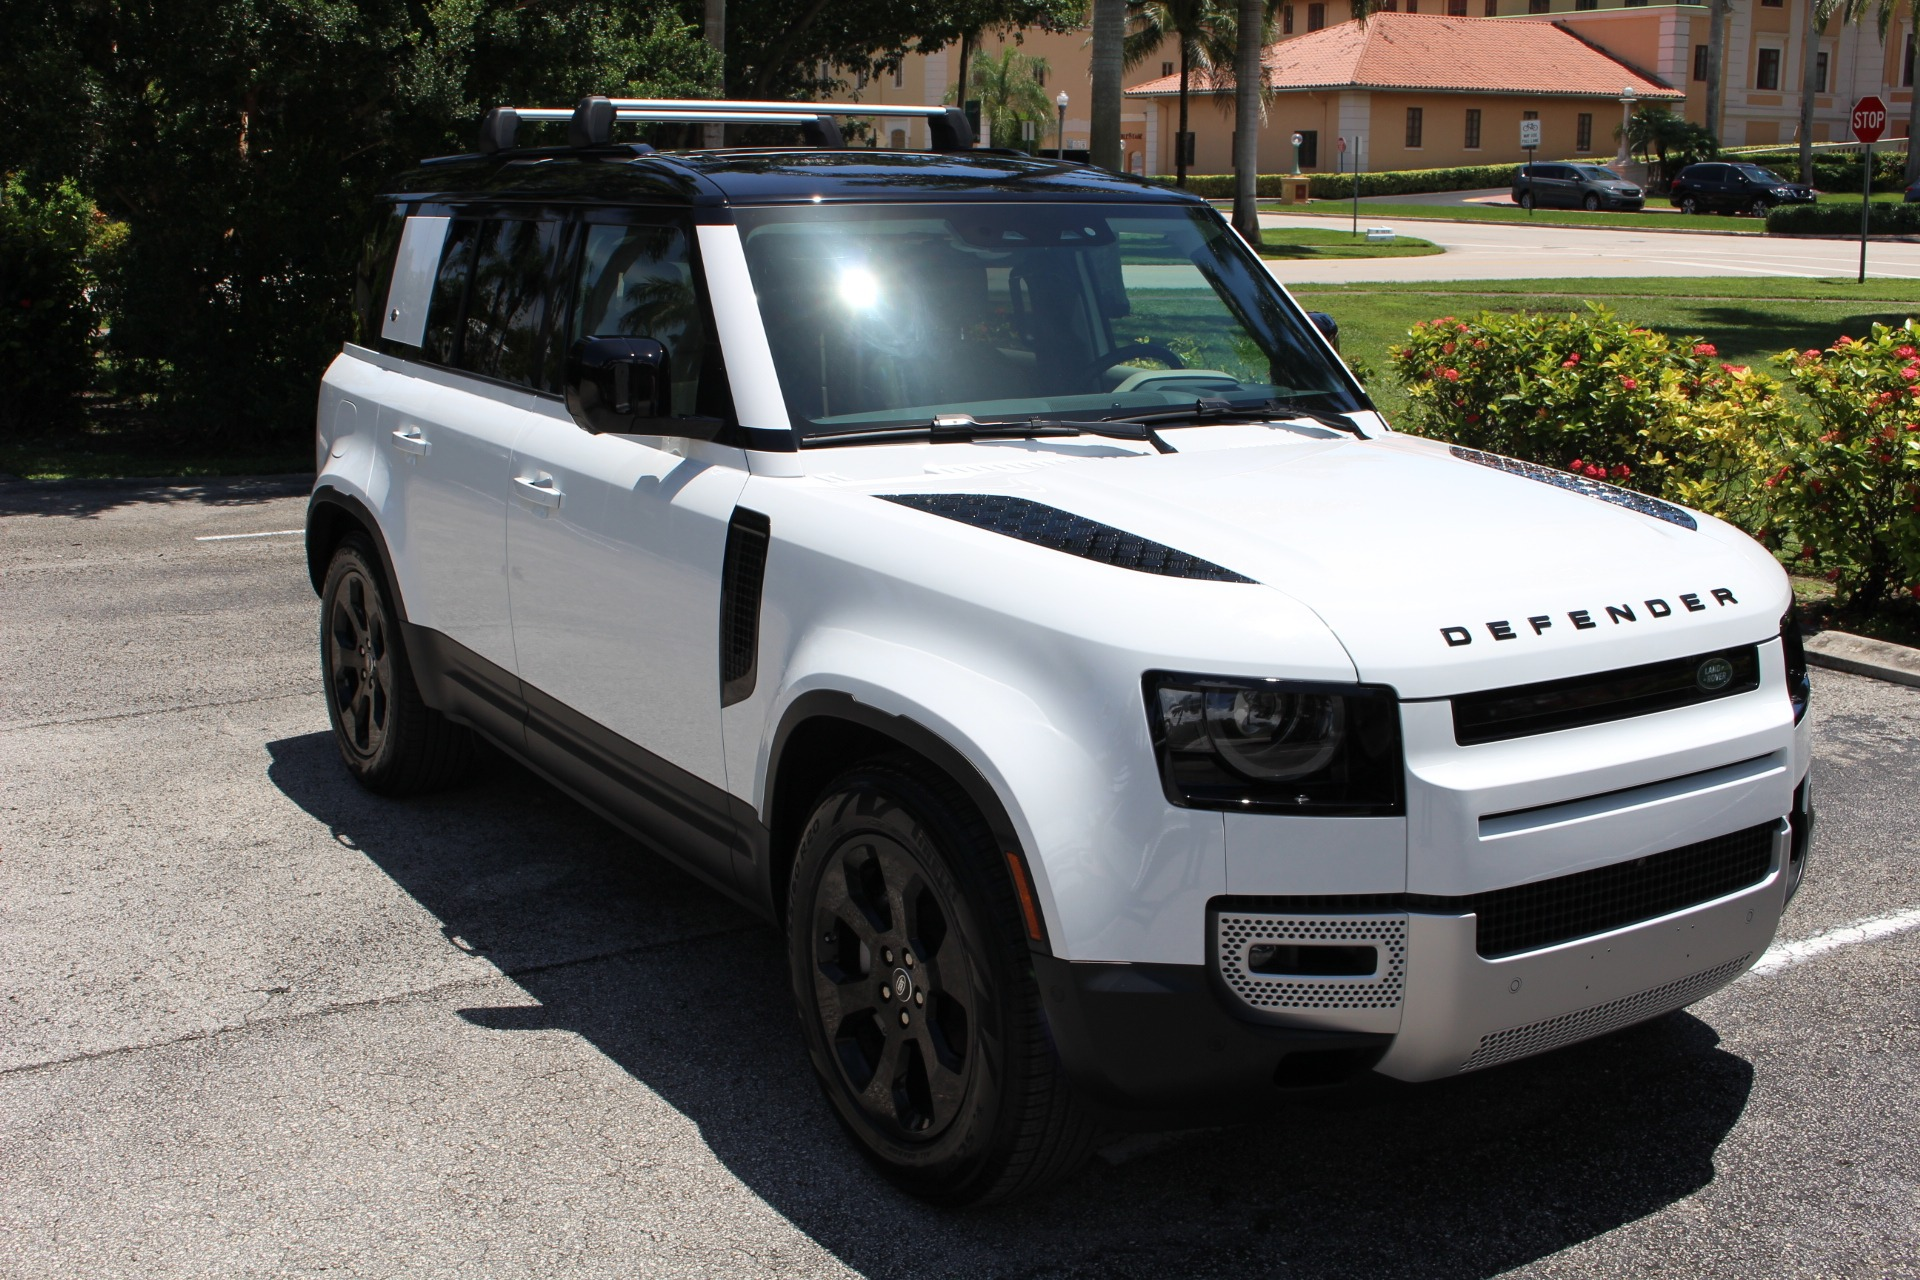 Used 2020 Land Rover Defender 110 HSE for sale Sold at The Gables Sports Cars in Miami FL 33146 2